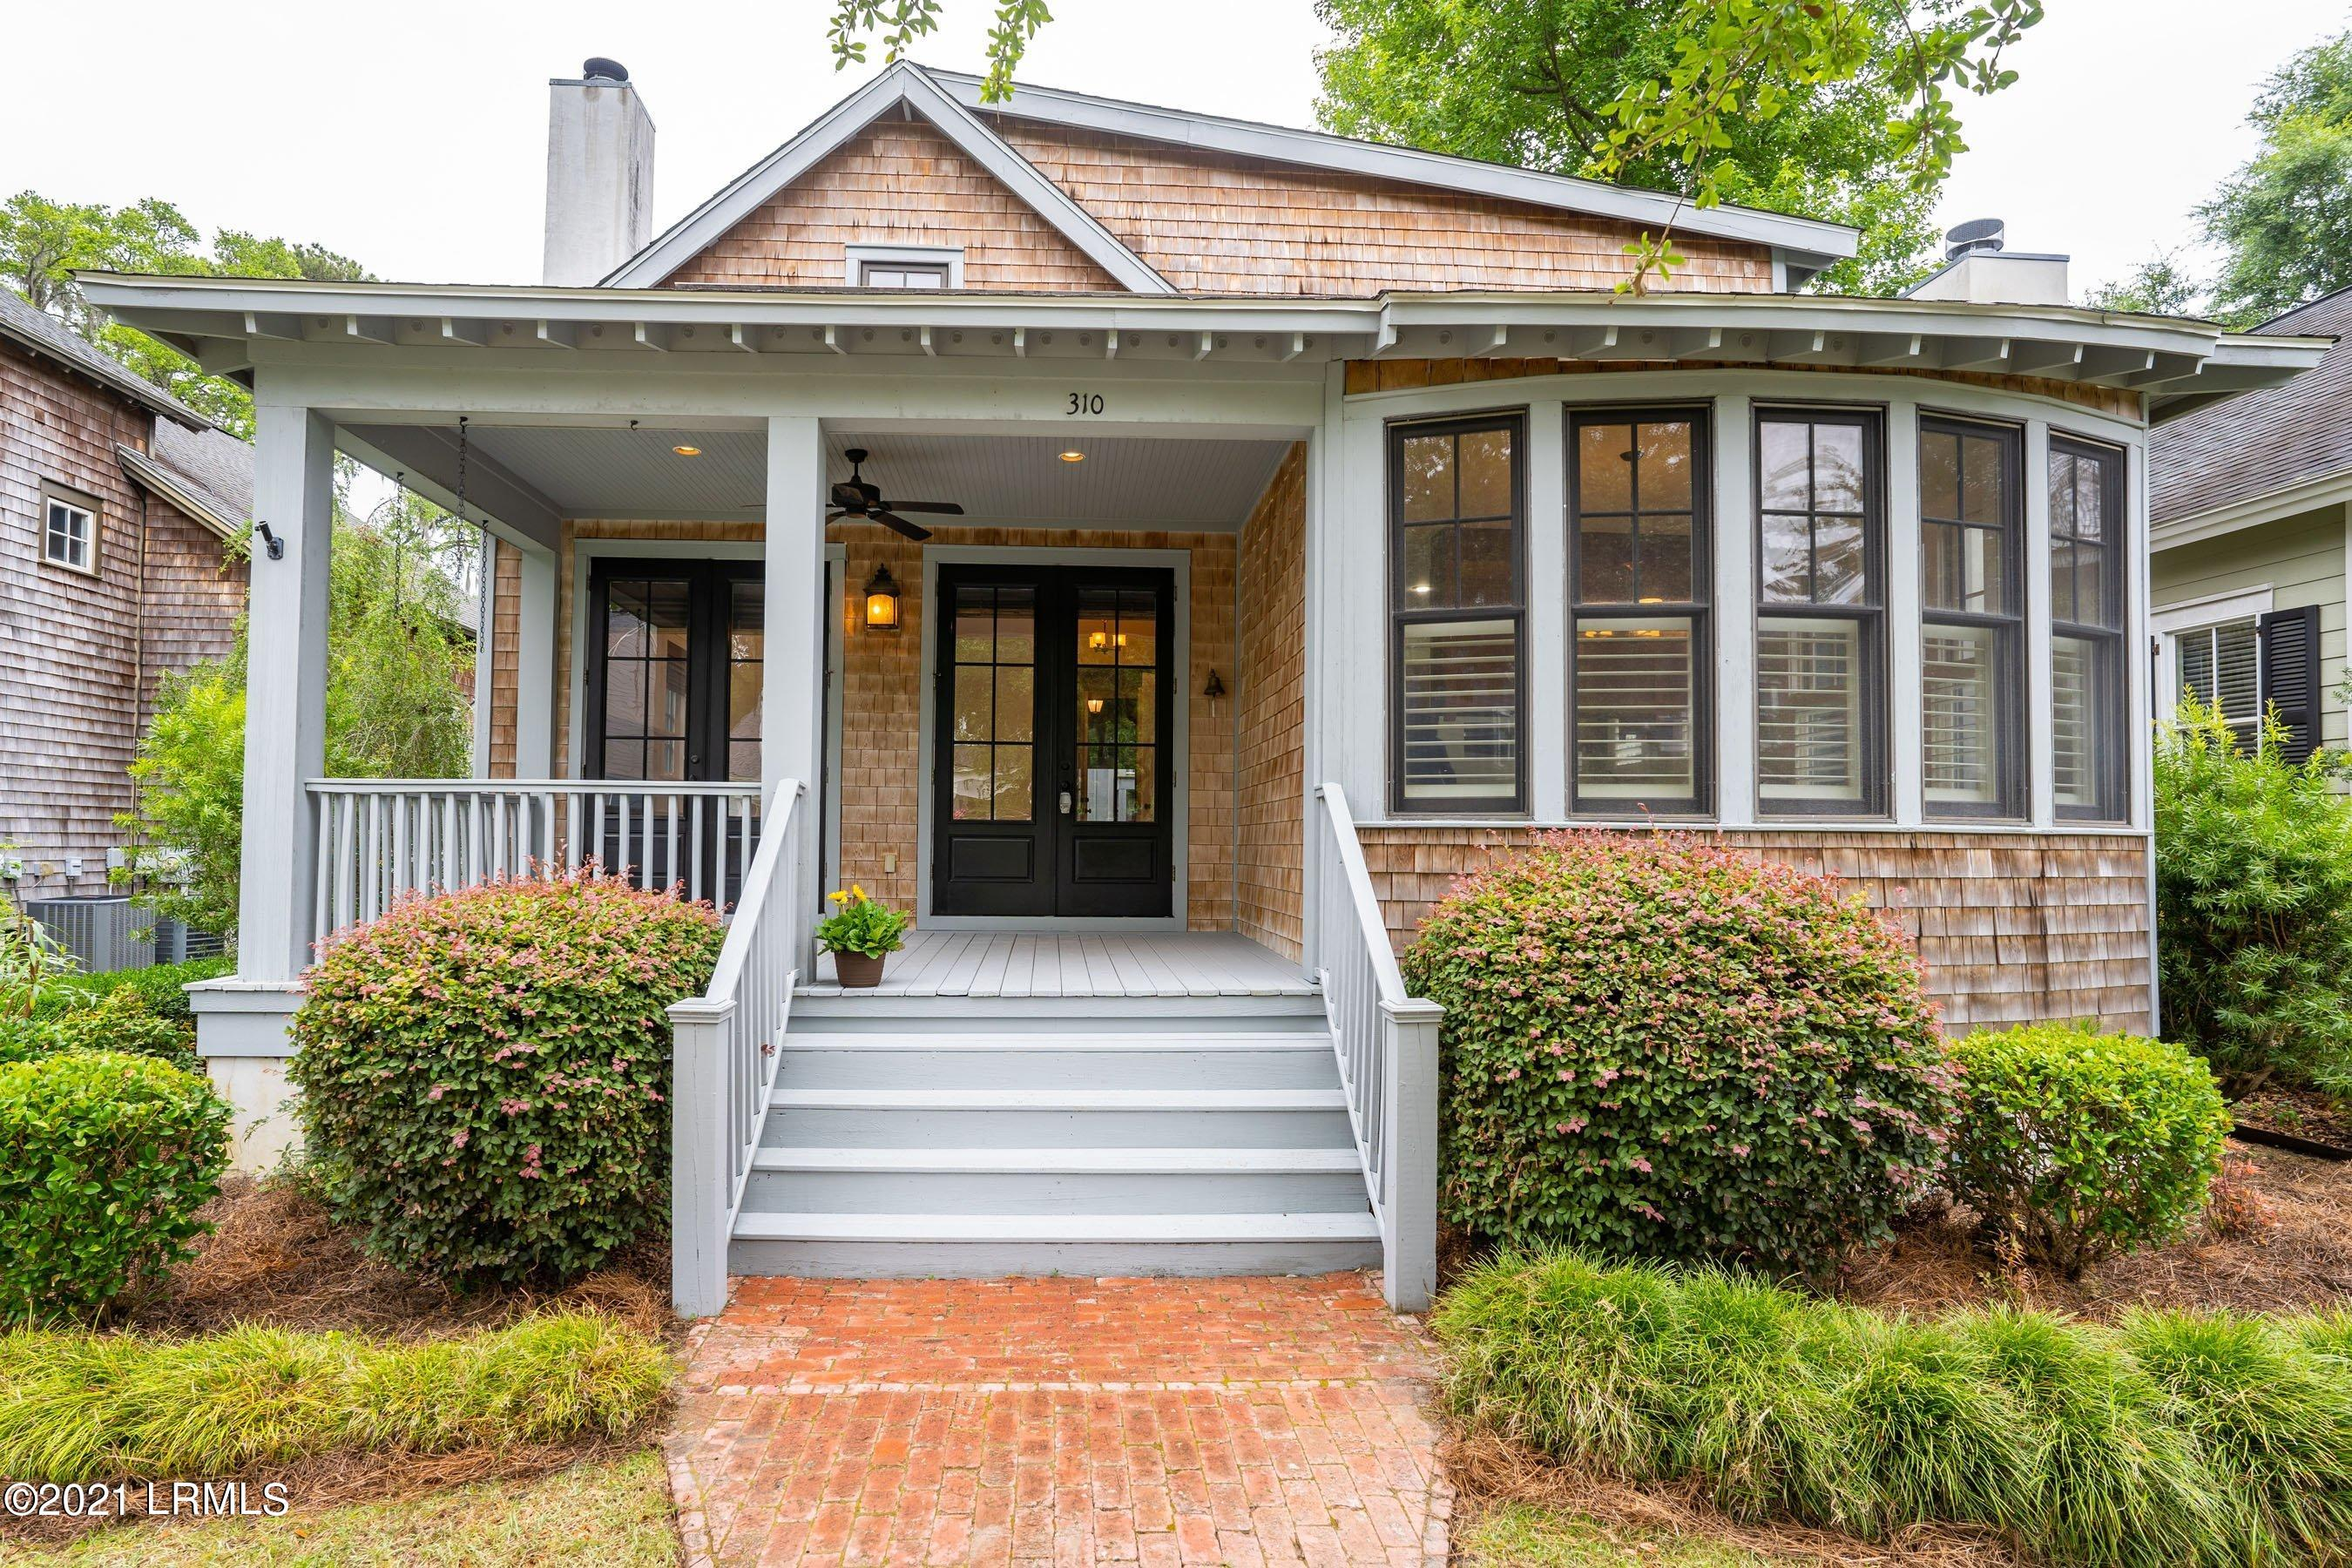 Photo of 310 Cockle Lane, Beaufort, SC 29906